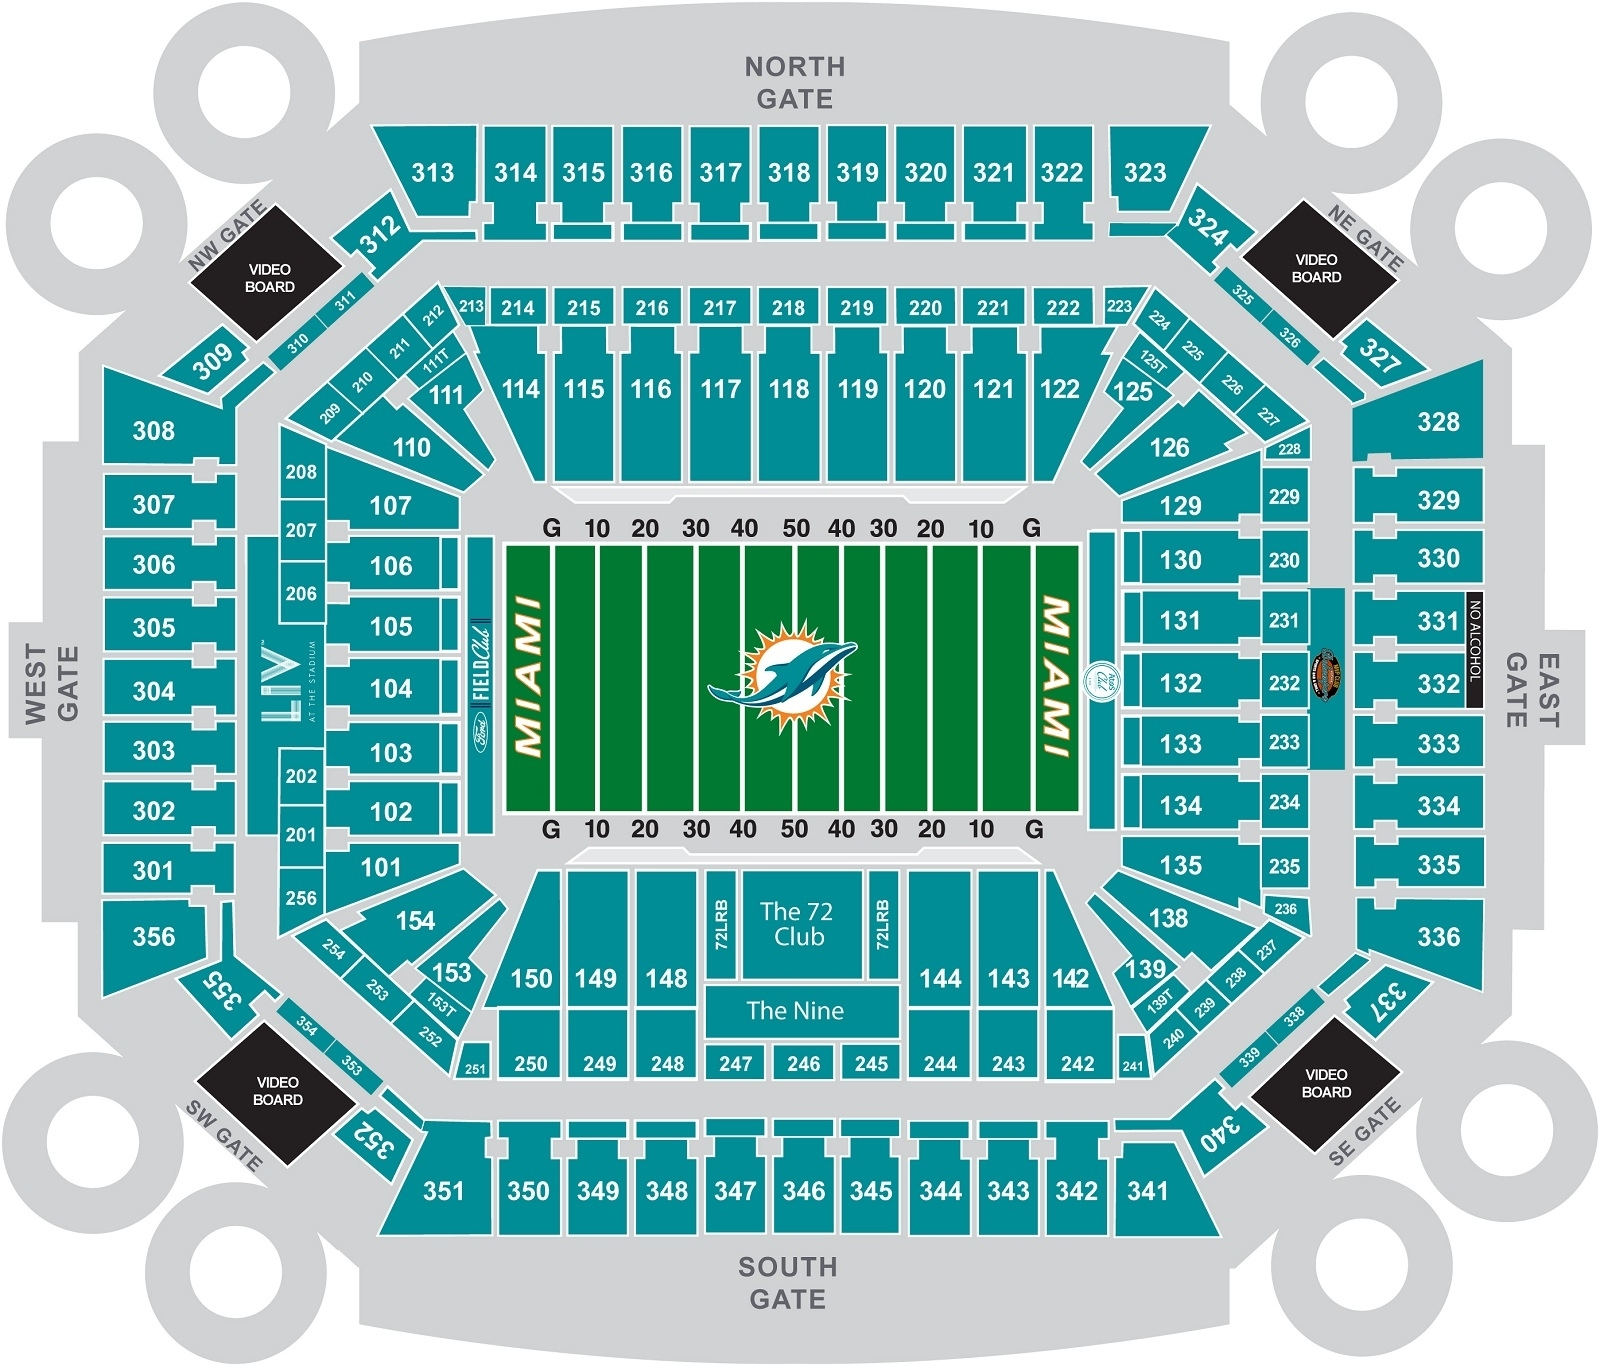 2020 Super Bowl Seating Chart | February 2, 2020 | Fan within Super Bowl Seating Capacity Requirements